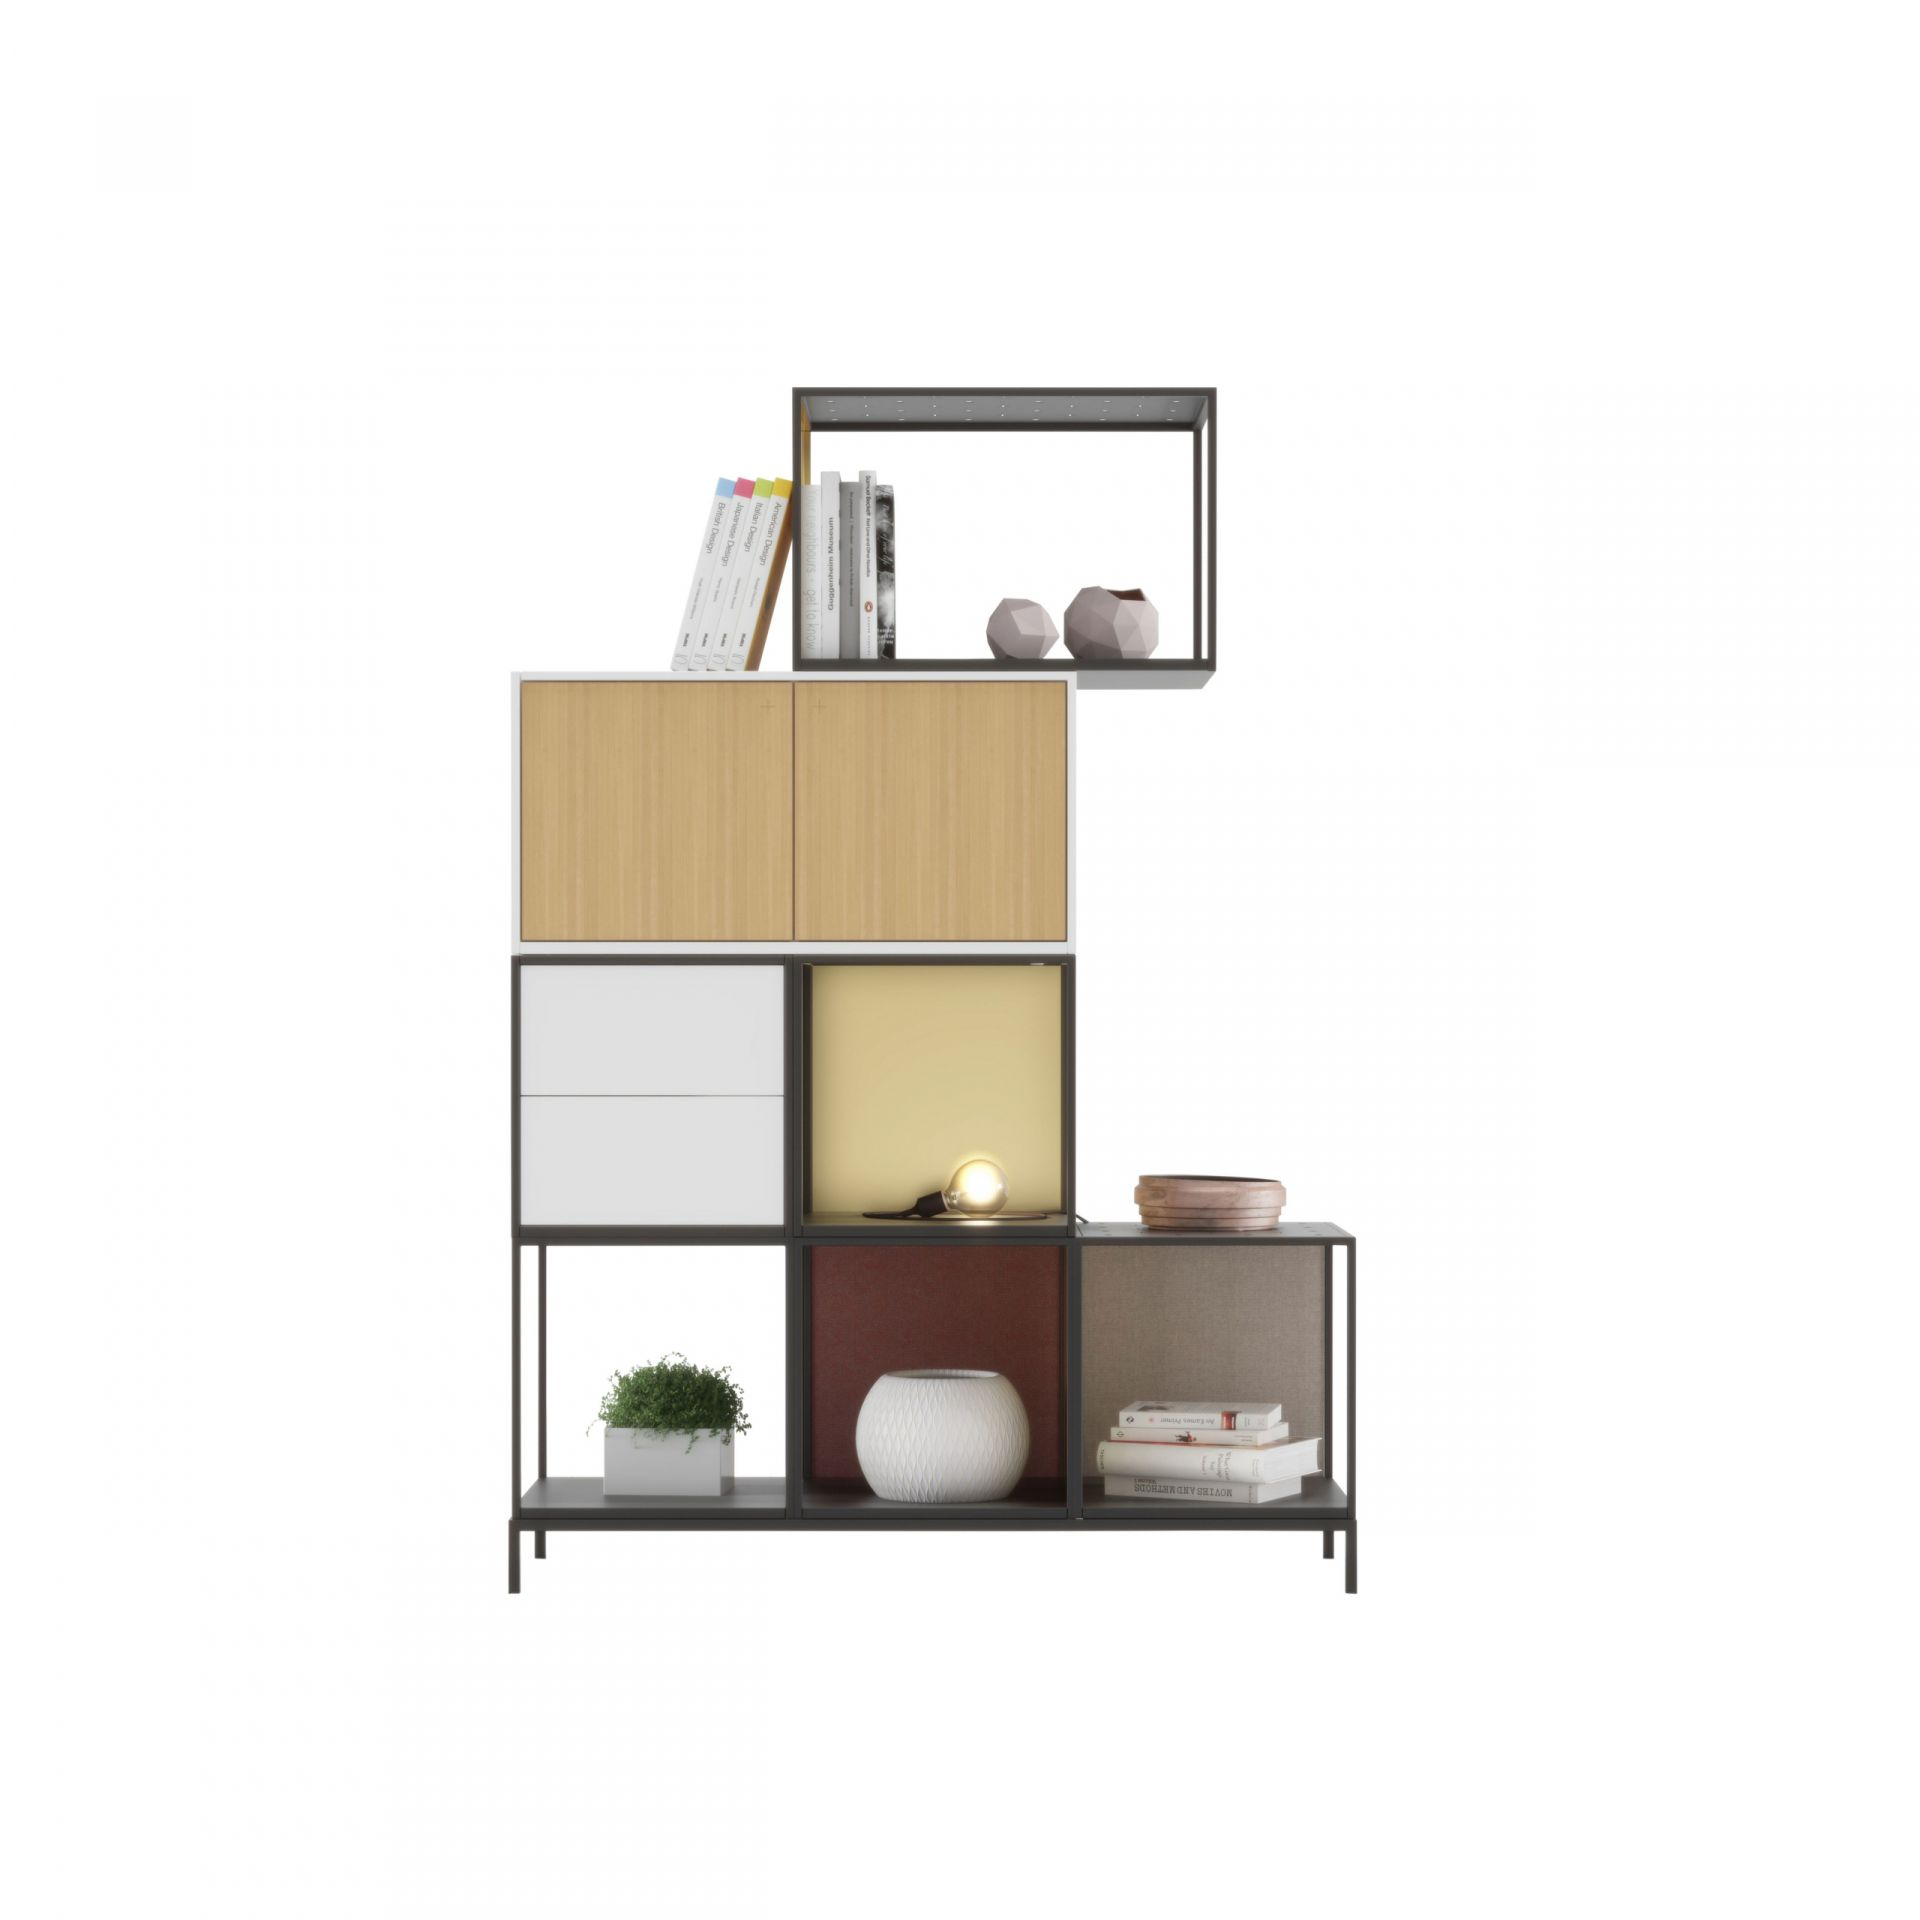 Create Modular storage, metal frame